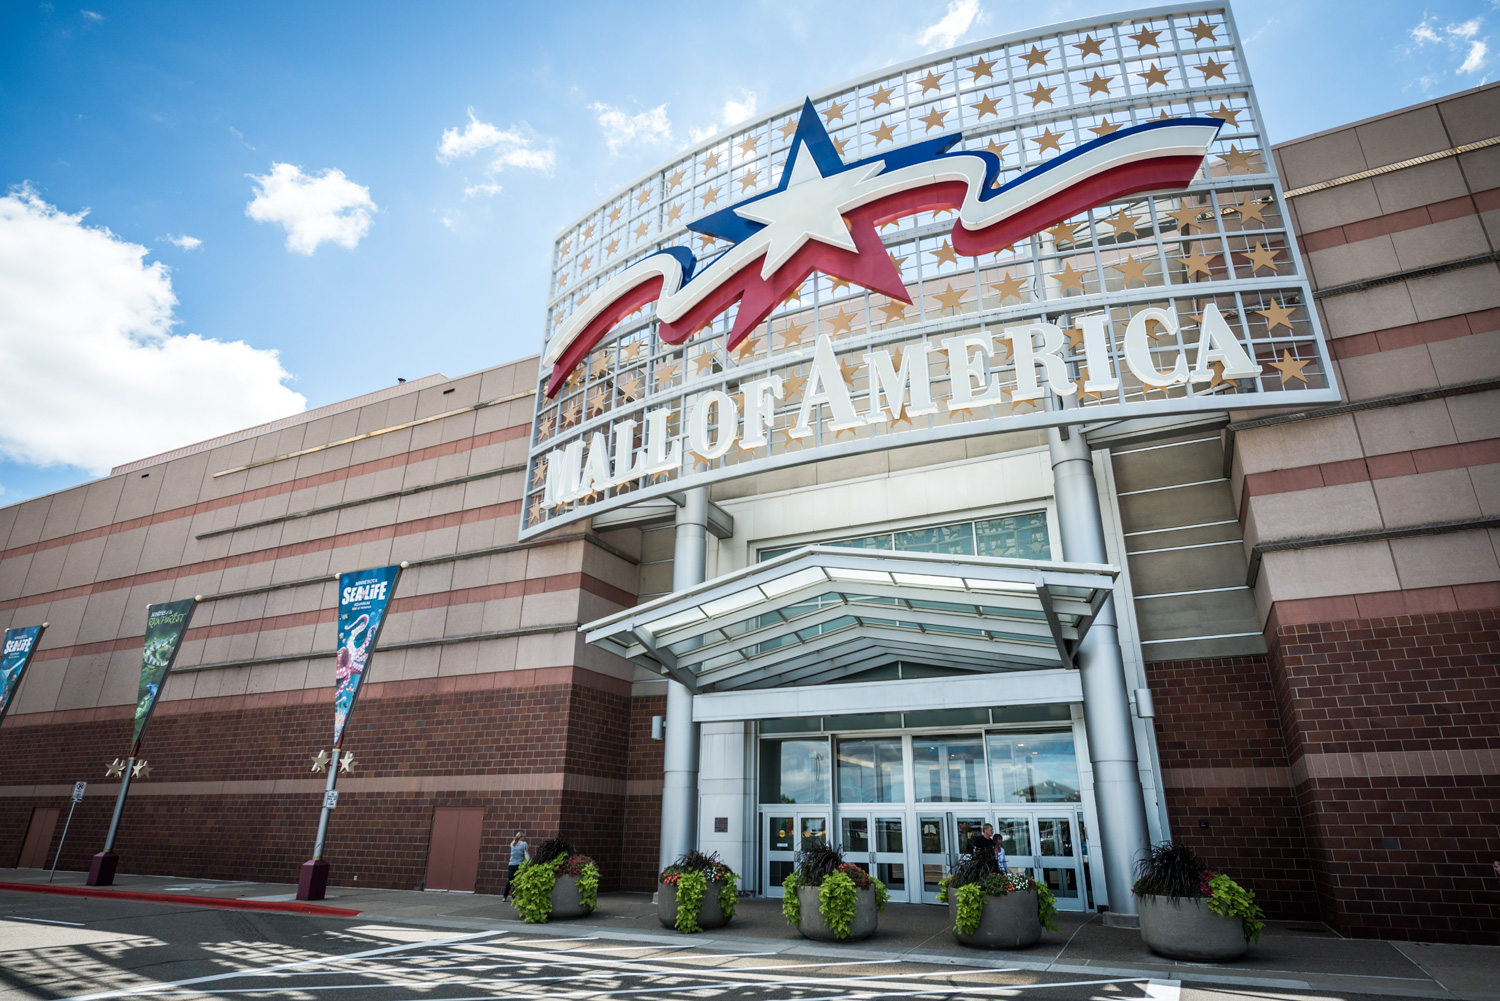 Mall of America main entrance. Image shot 12/2013. Exact date unknown.